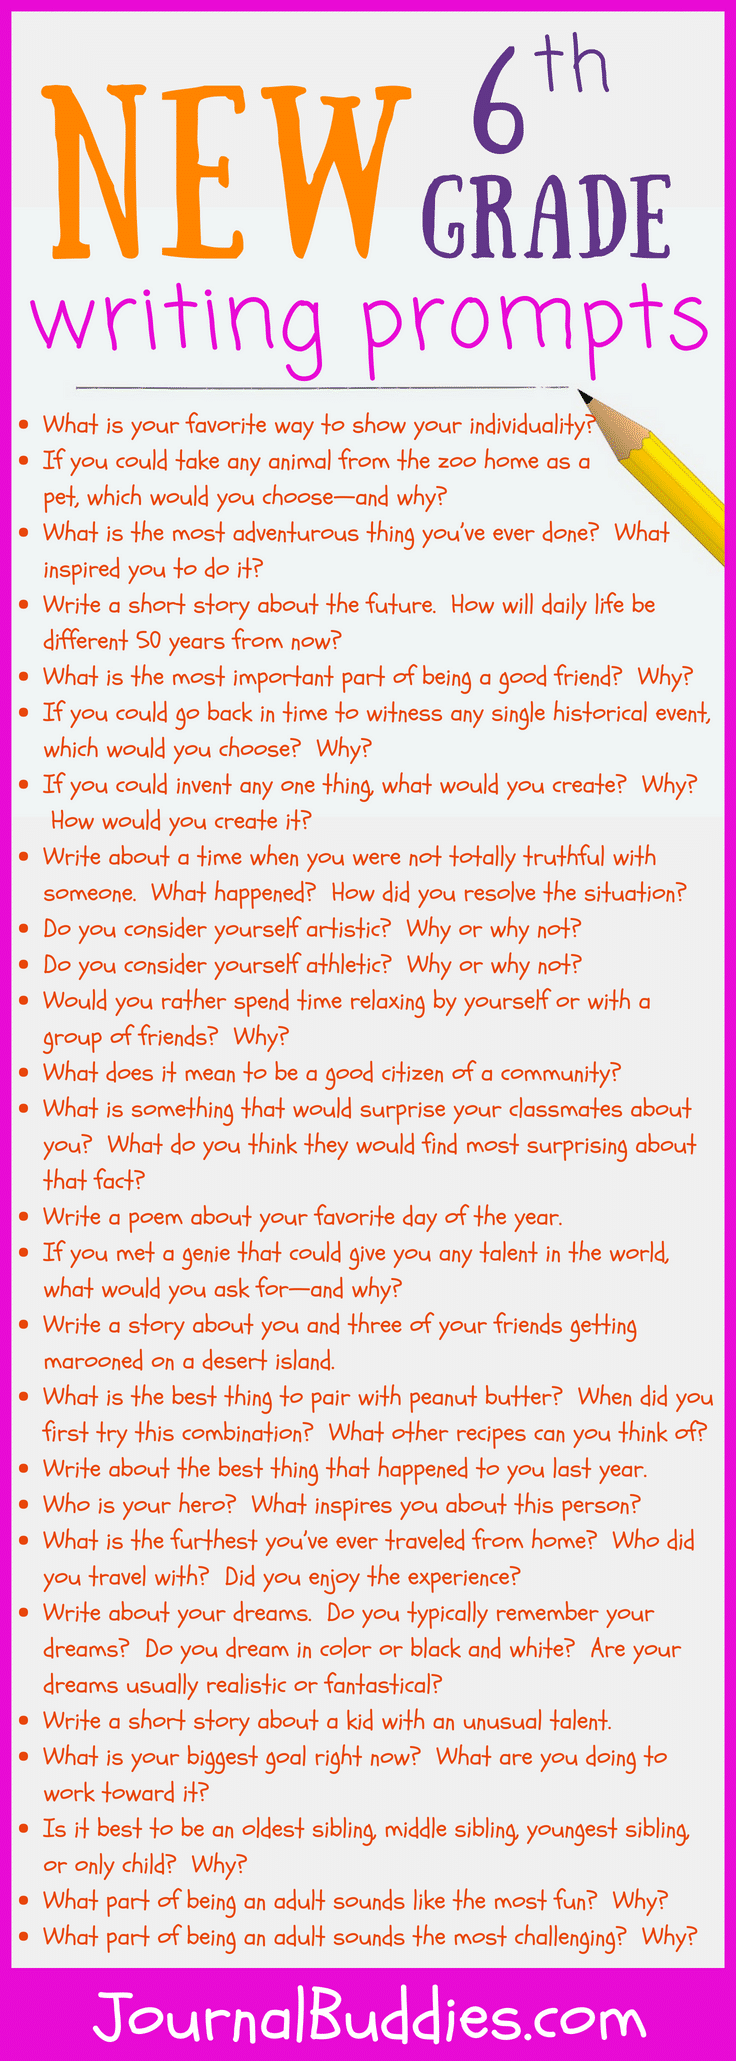 37 New Sixth Grade Writing Prompts • JournalBuddies com